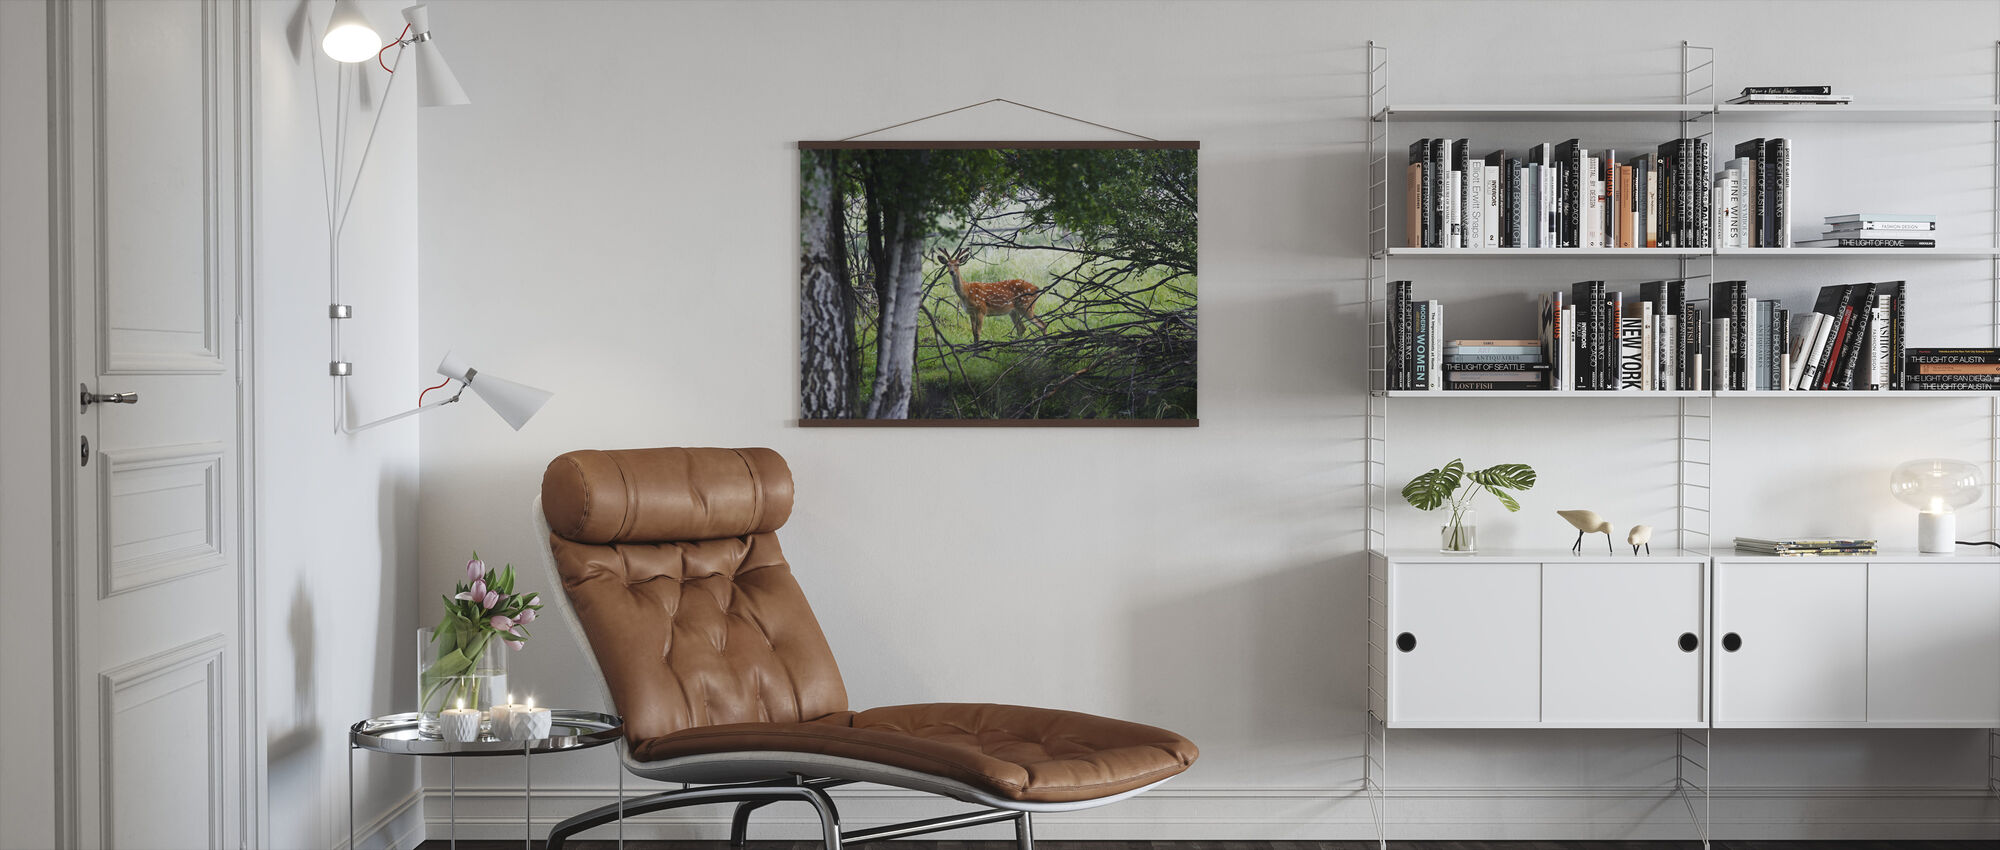 Wild Deer - Poster - Living Room